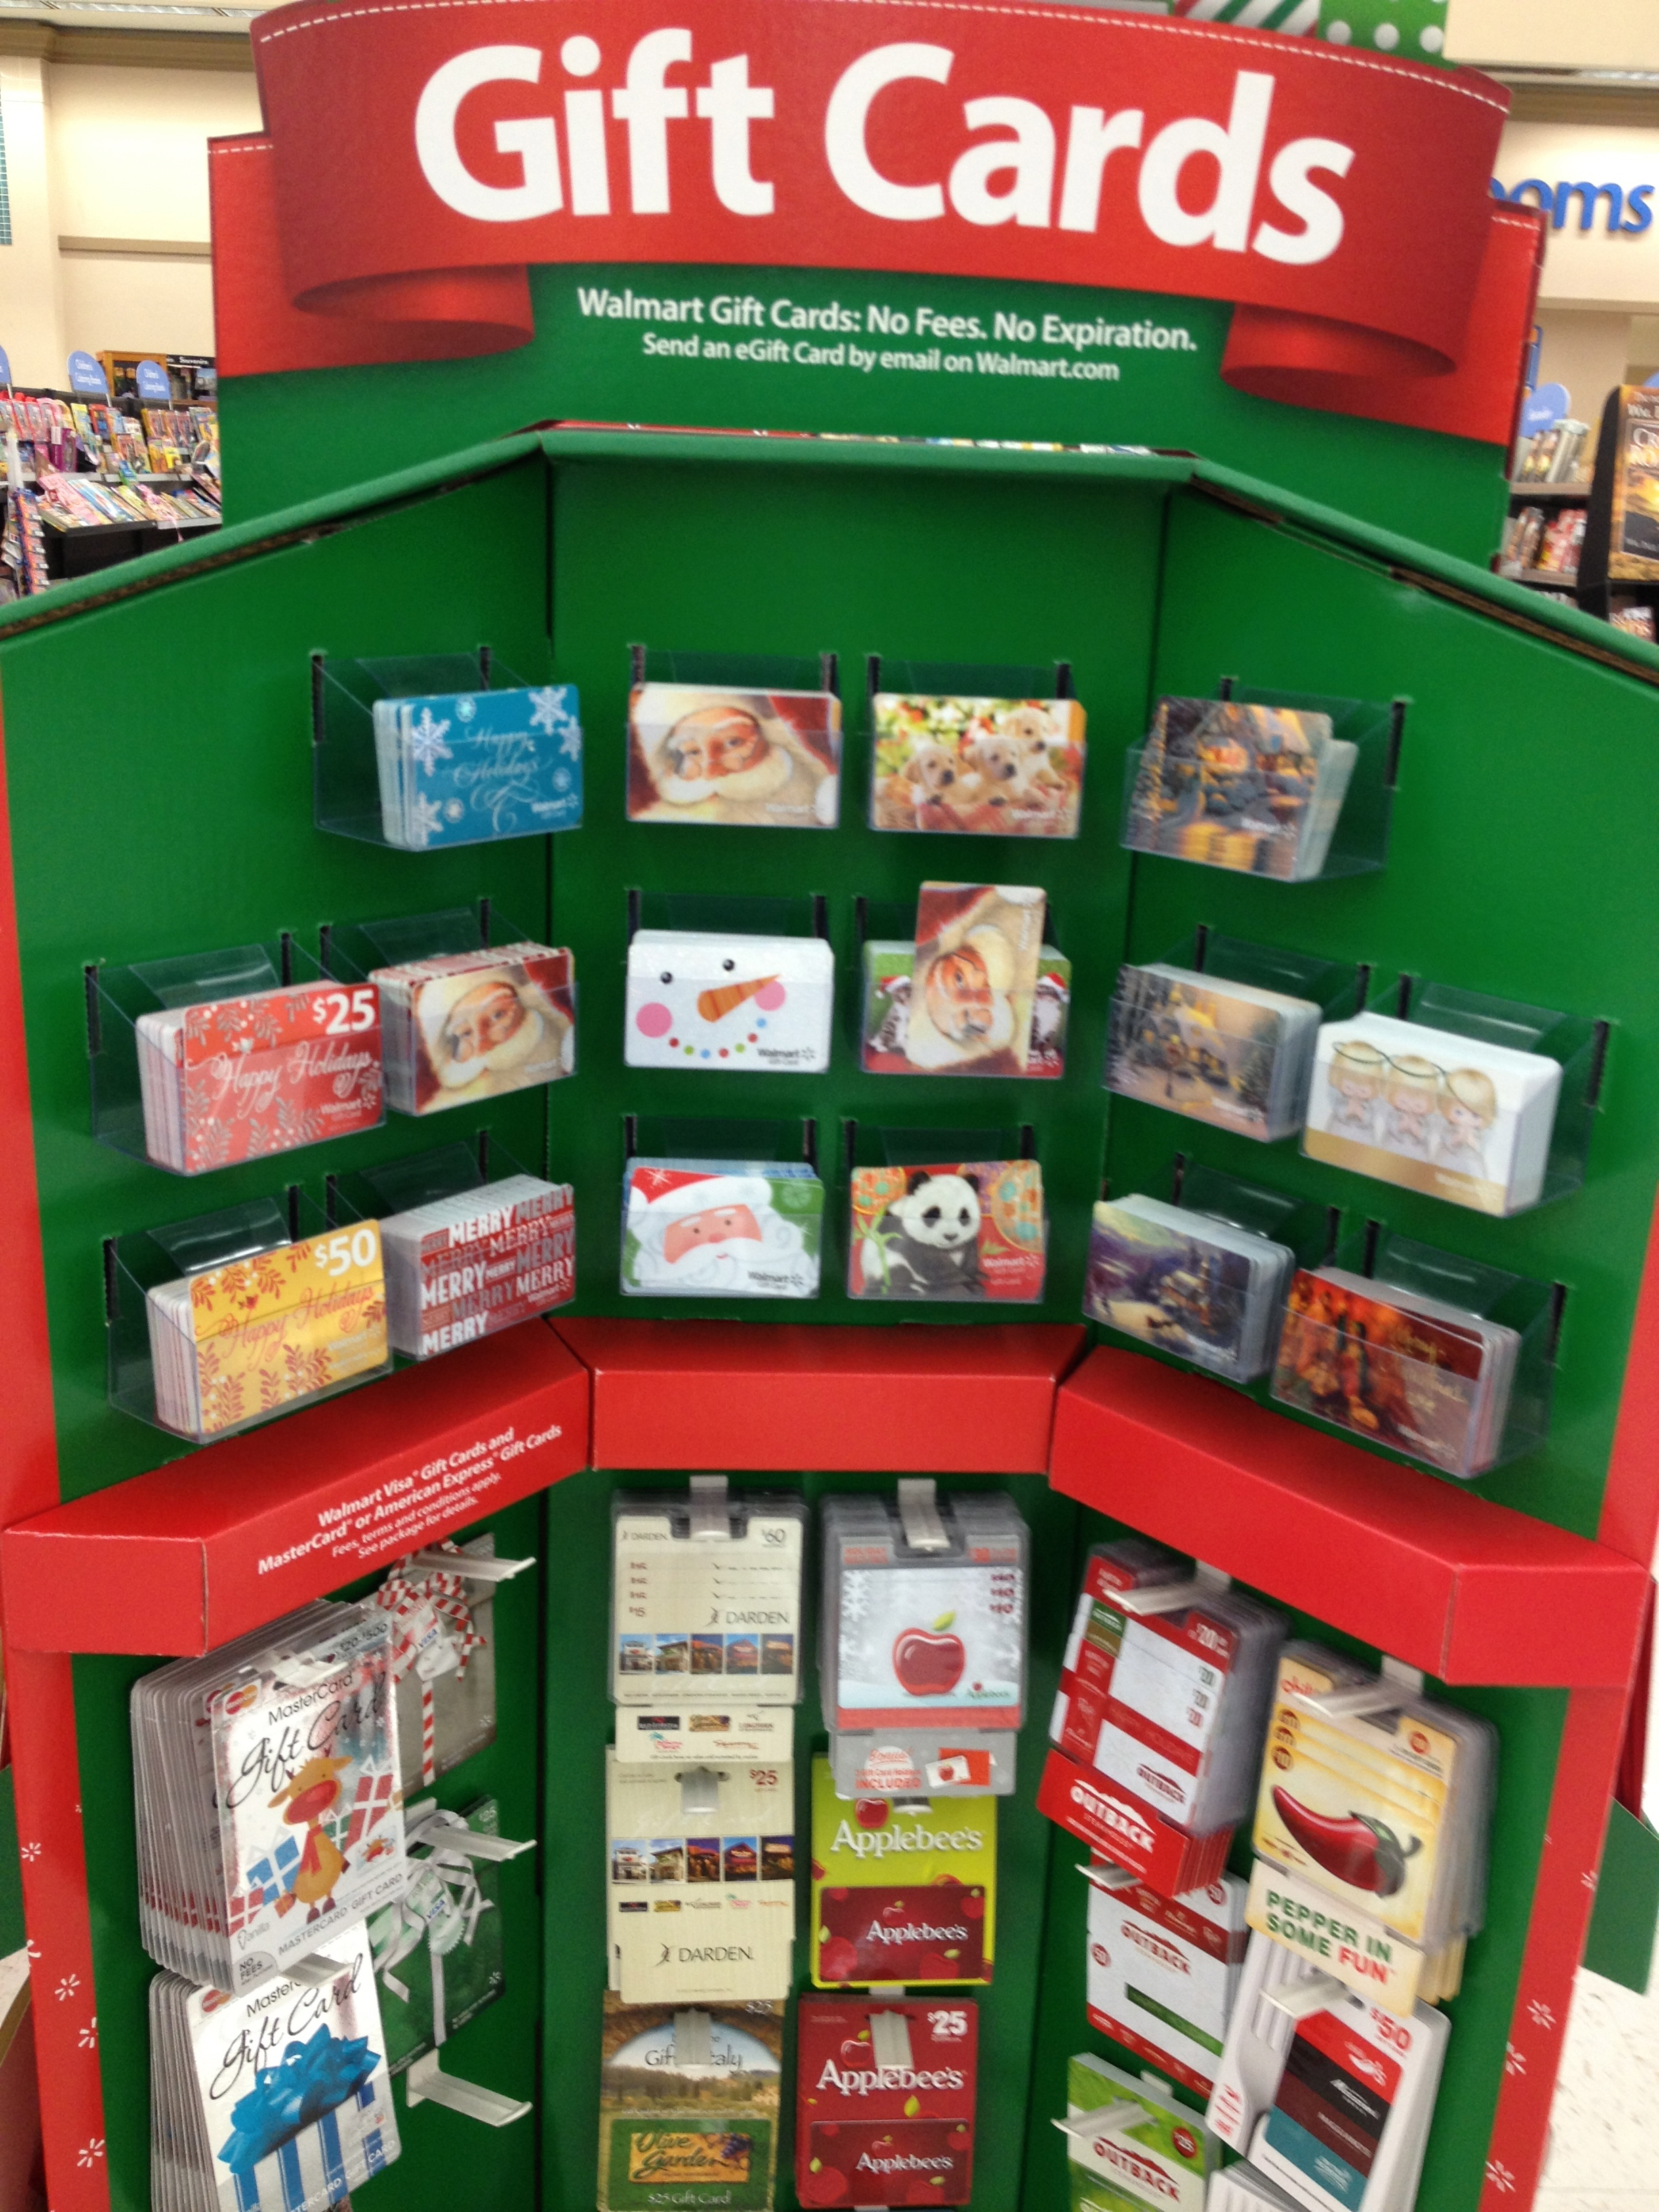 Restaurant Gift Card As Wedding Gift : gift cards at walmart our potluck family img 5607 img 5607 cards at ...